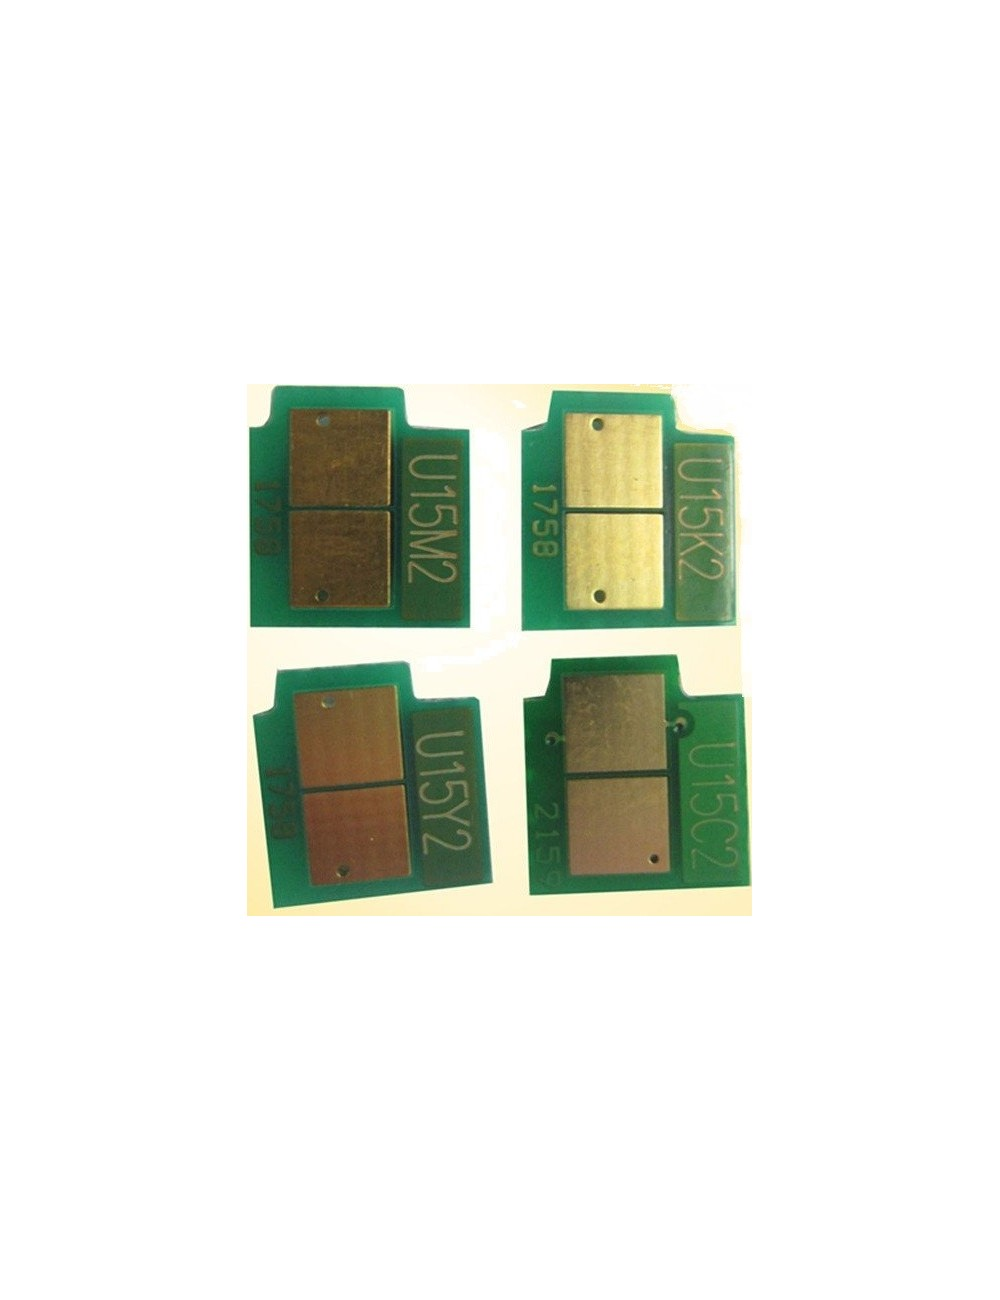 CHIP HP Color LJ3800/CP 3505 Yellow